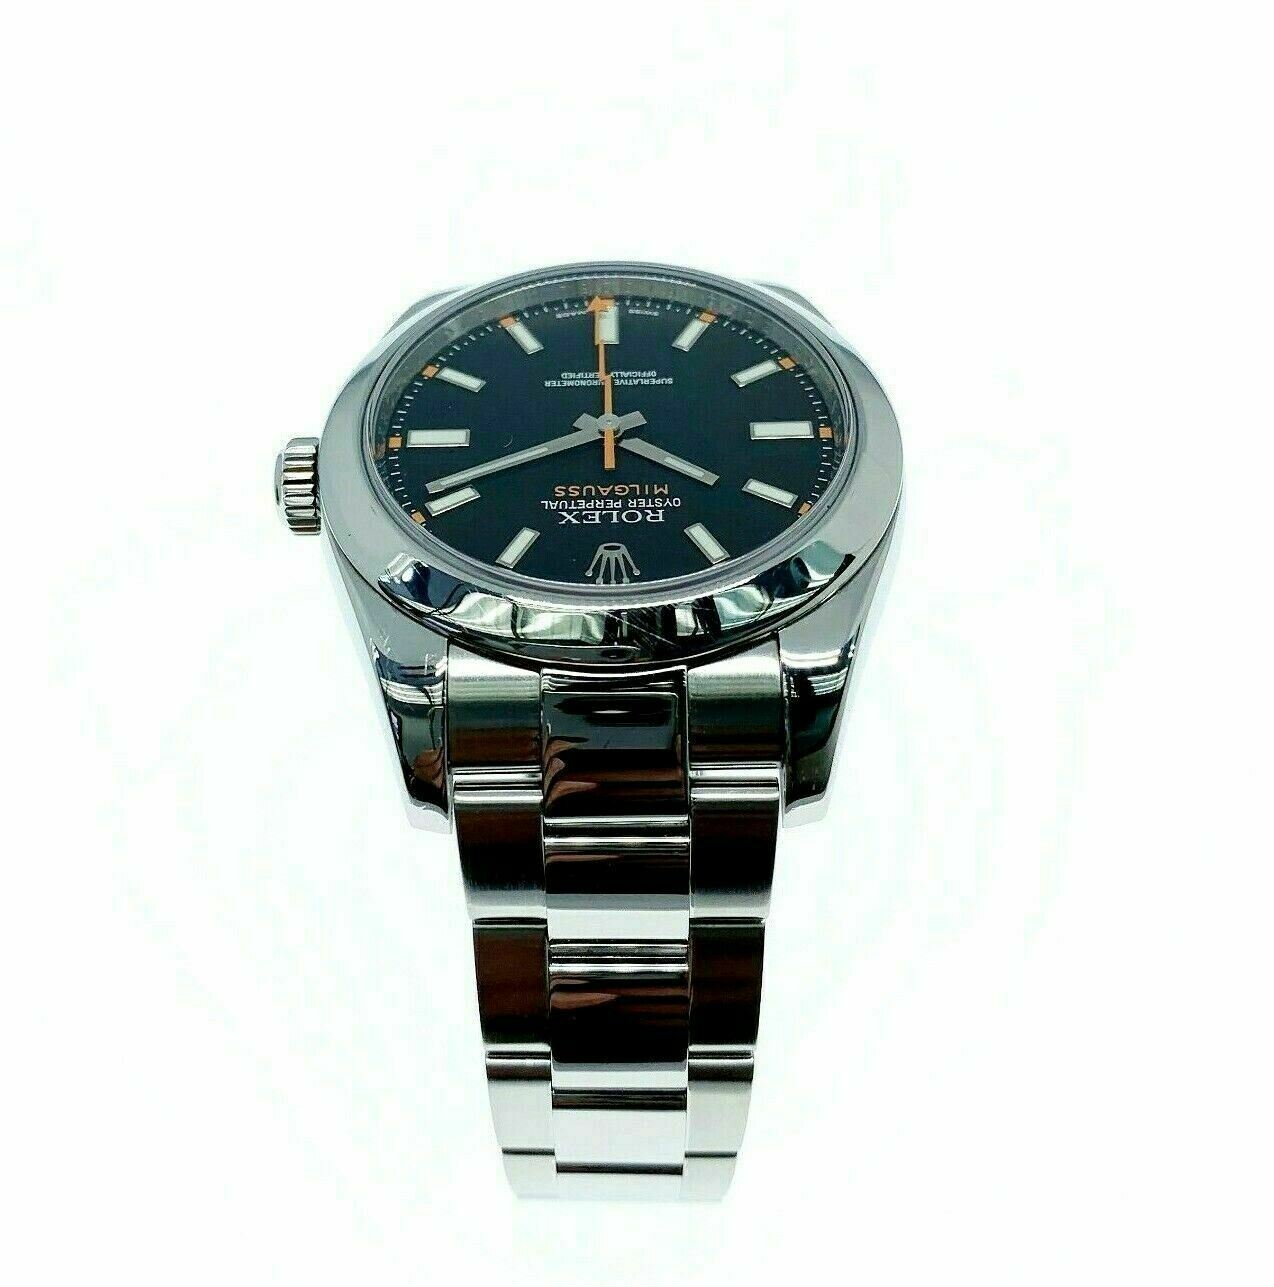 Rolex 40MM Milgauss Watch Stainless Steel Oyster Smooth Bezel Ref # 116400